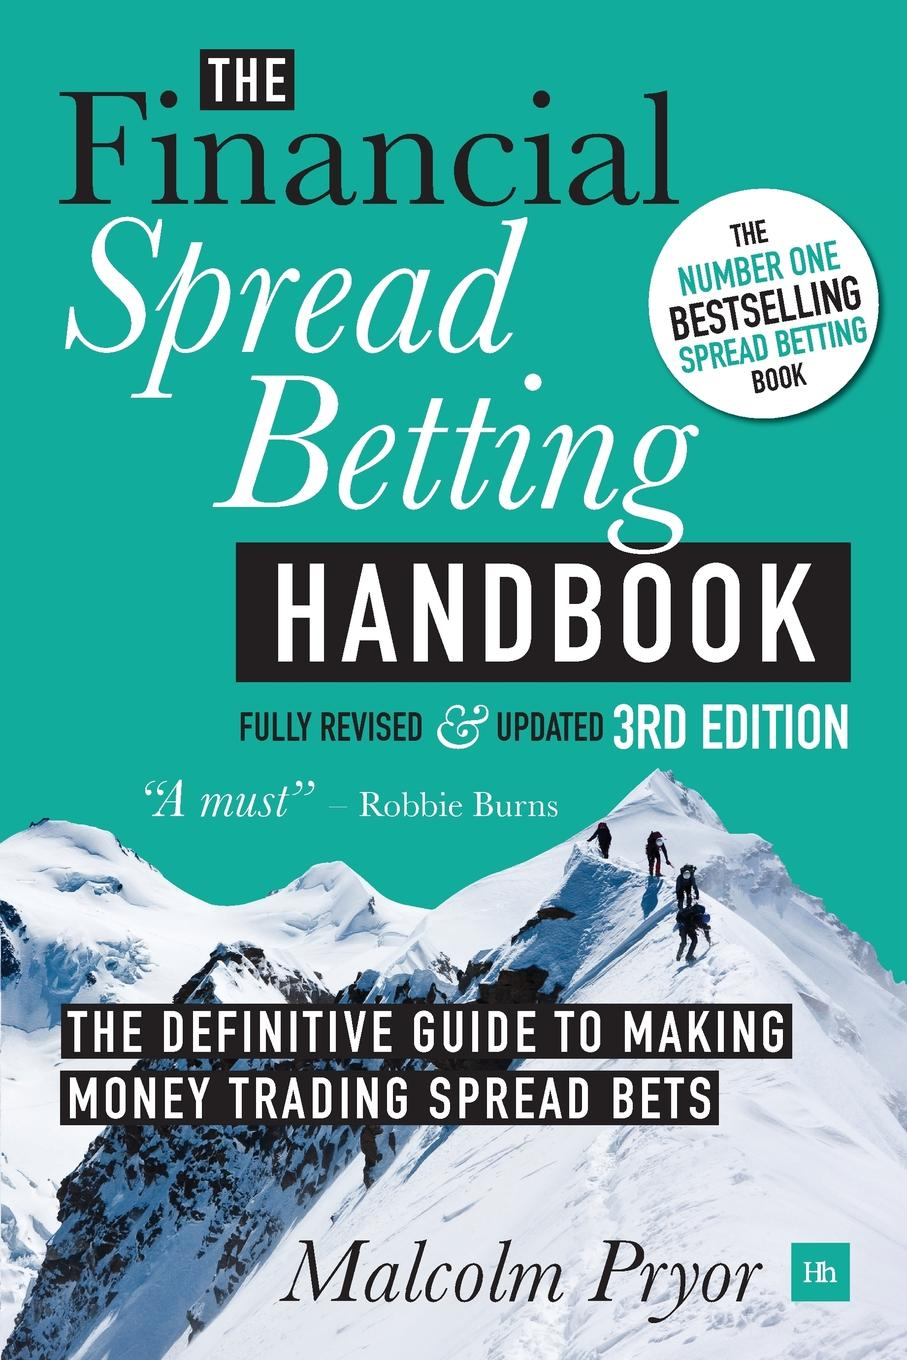 Malcolm Pryor Financial Spread Betting Handbook (3RD EDITION). A Definitive Guide to Making Money Trading Spread Bets